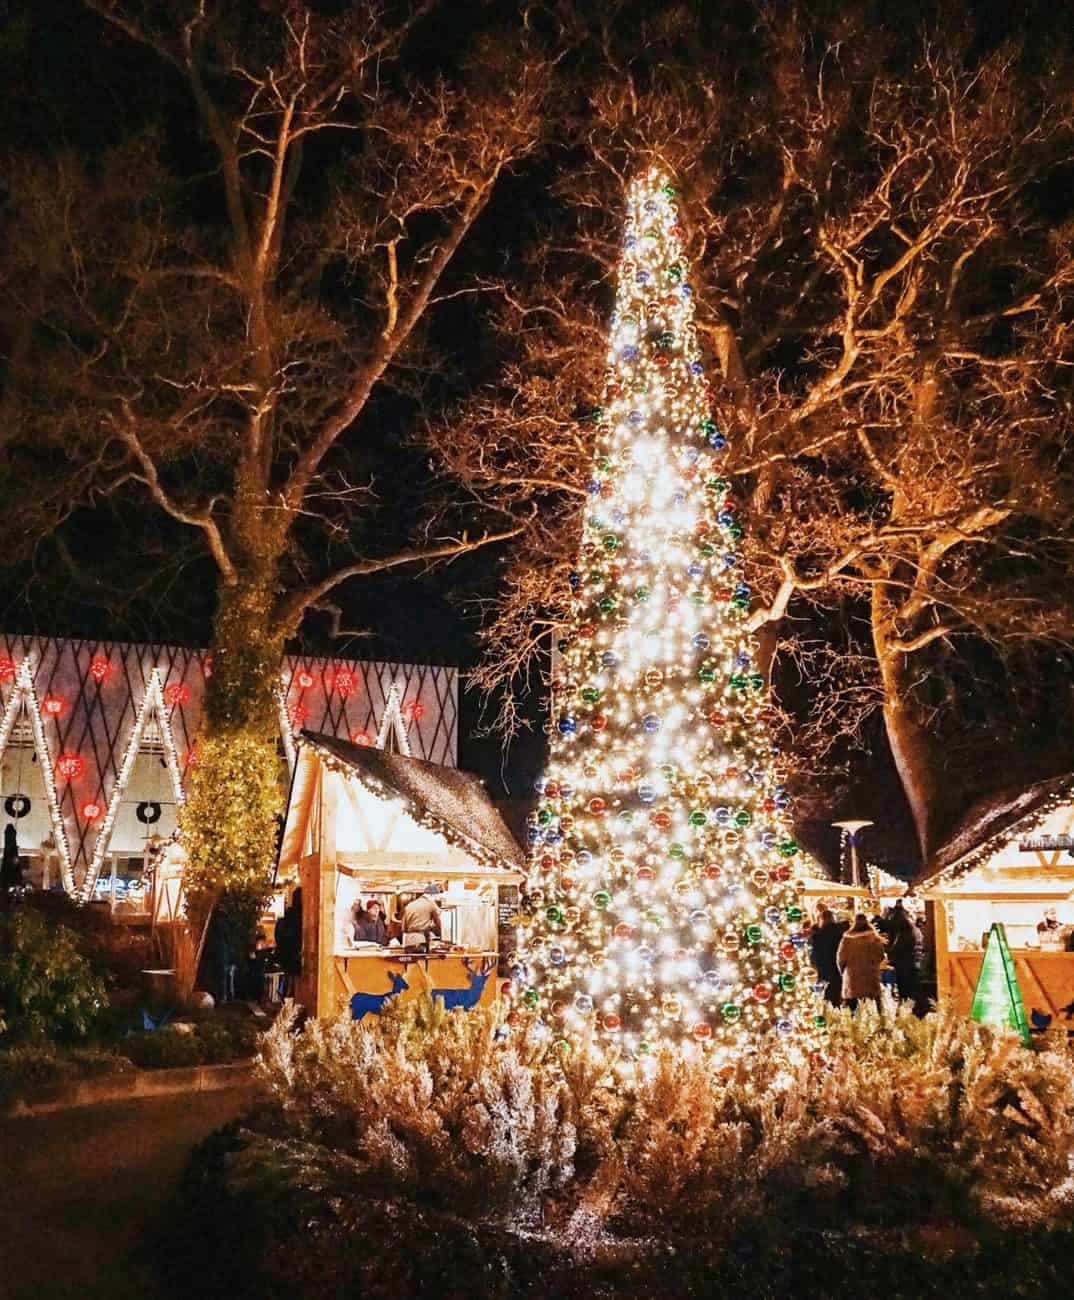 Which Country Hosts Striezelmarkt A Christmas Market Thats Been Held Since 1434.The Best Christmas Markets In Europe That You Should Visit